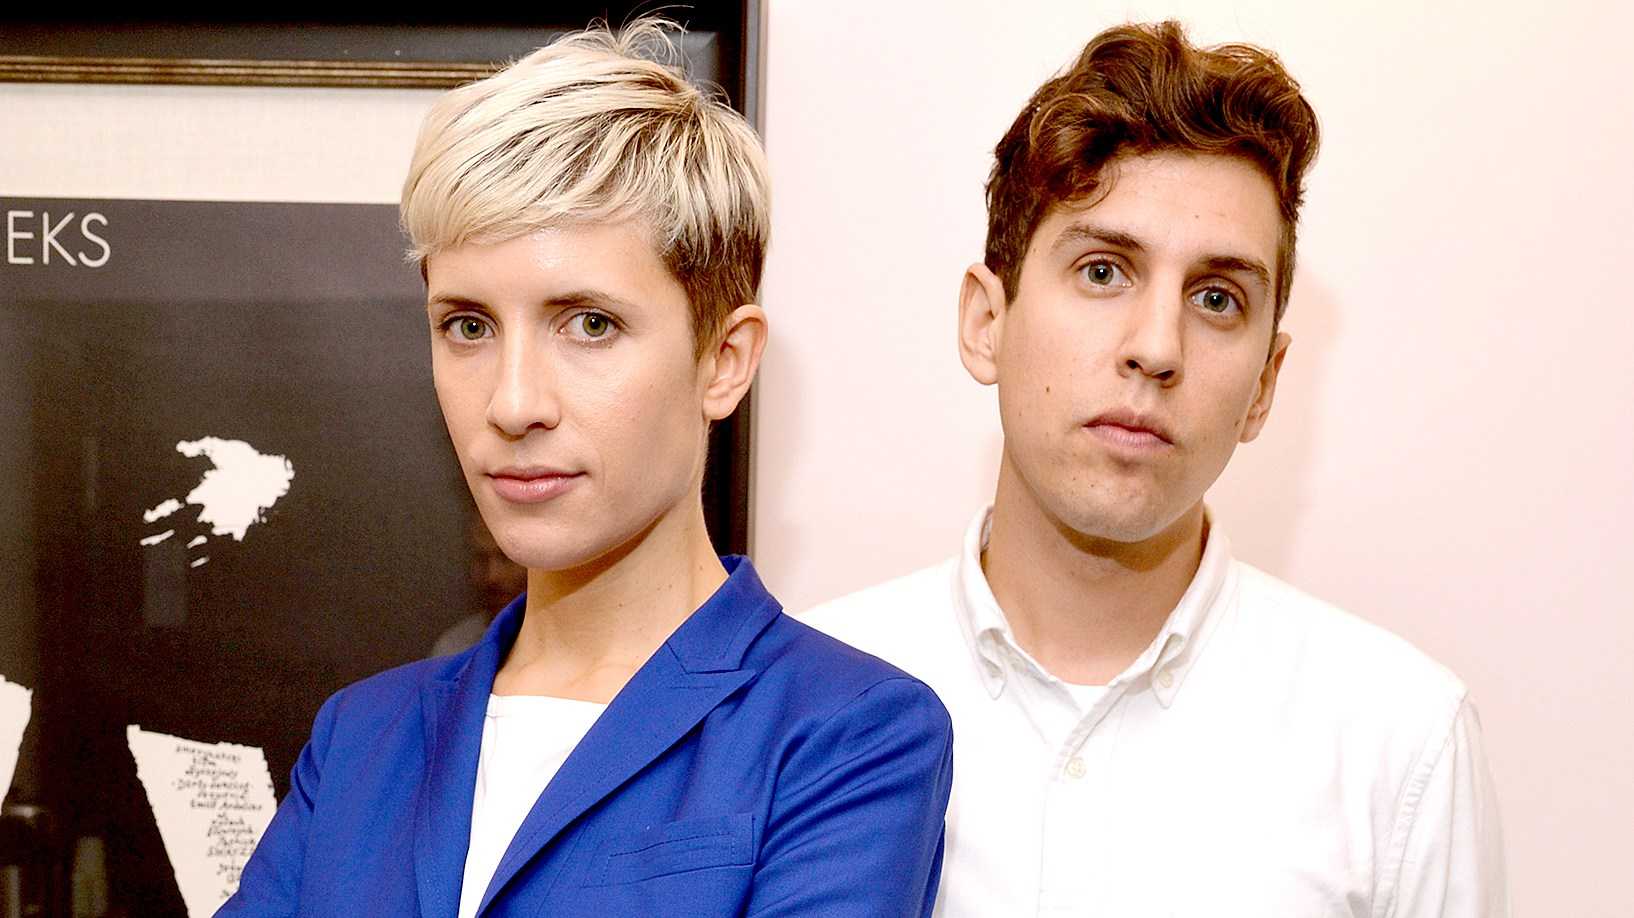 Claire Evans and Jona Bechtolt of the band Yacht attend the WIRED by Design retreat at Skywalker Sound on September 30, 2014.a